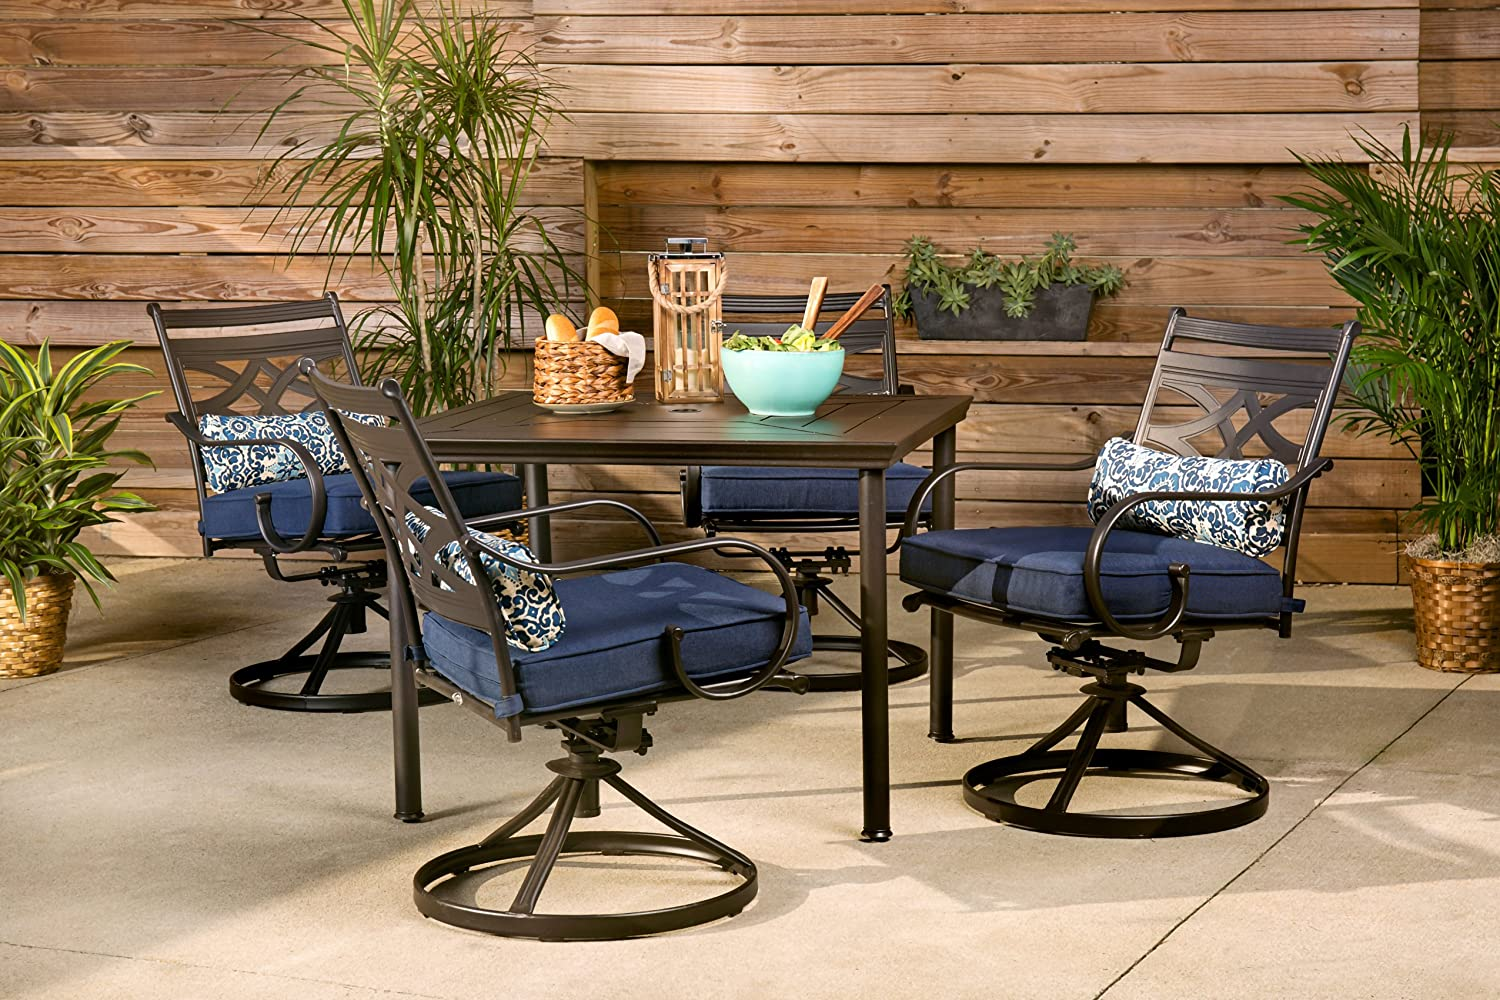 Hanover MCLRDN10PCSQSW10 NVY Montclair 10 Piece Patio Dining Set in Navy Blue  with 10 Swivel Rockers and a 100 Inch Square Table Outdoor Furniture